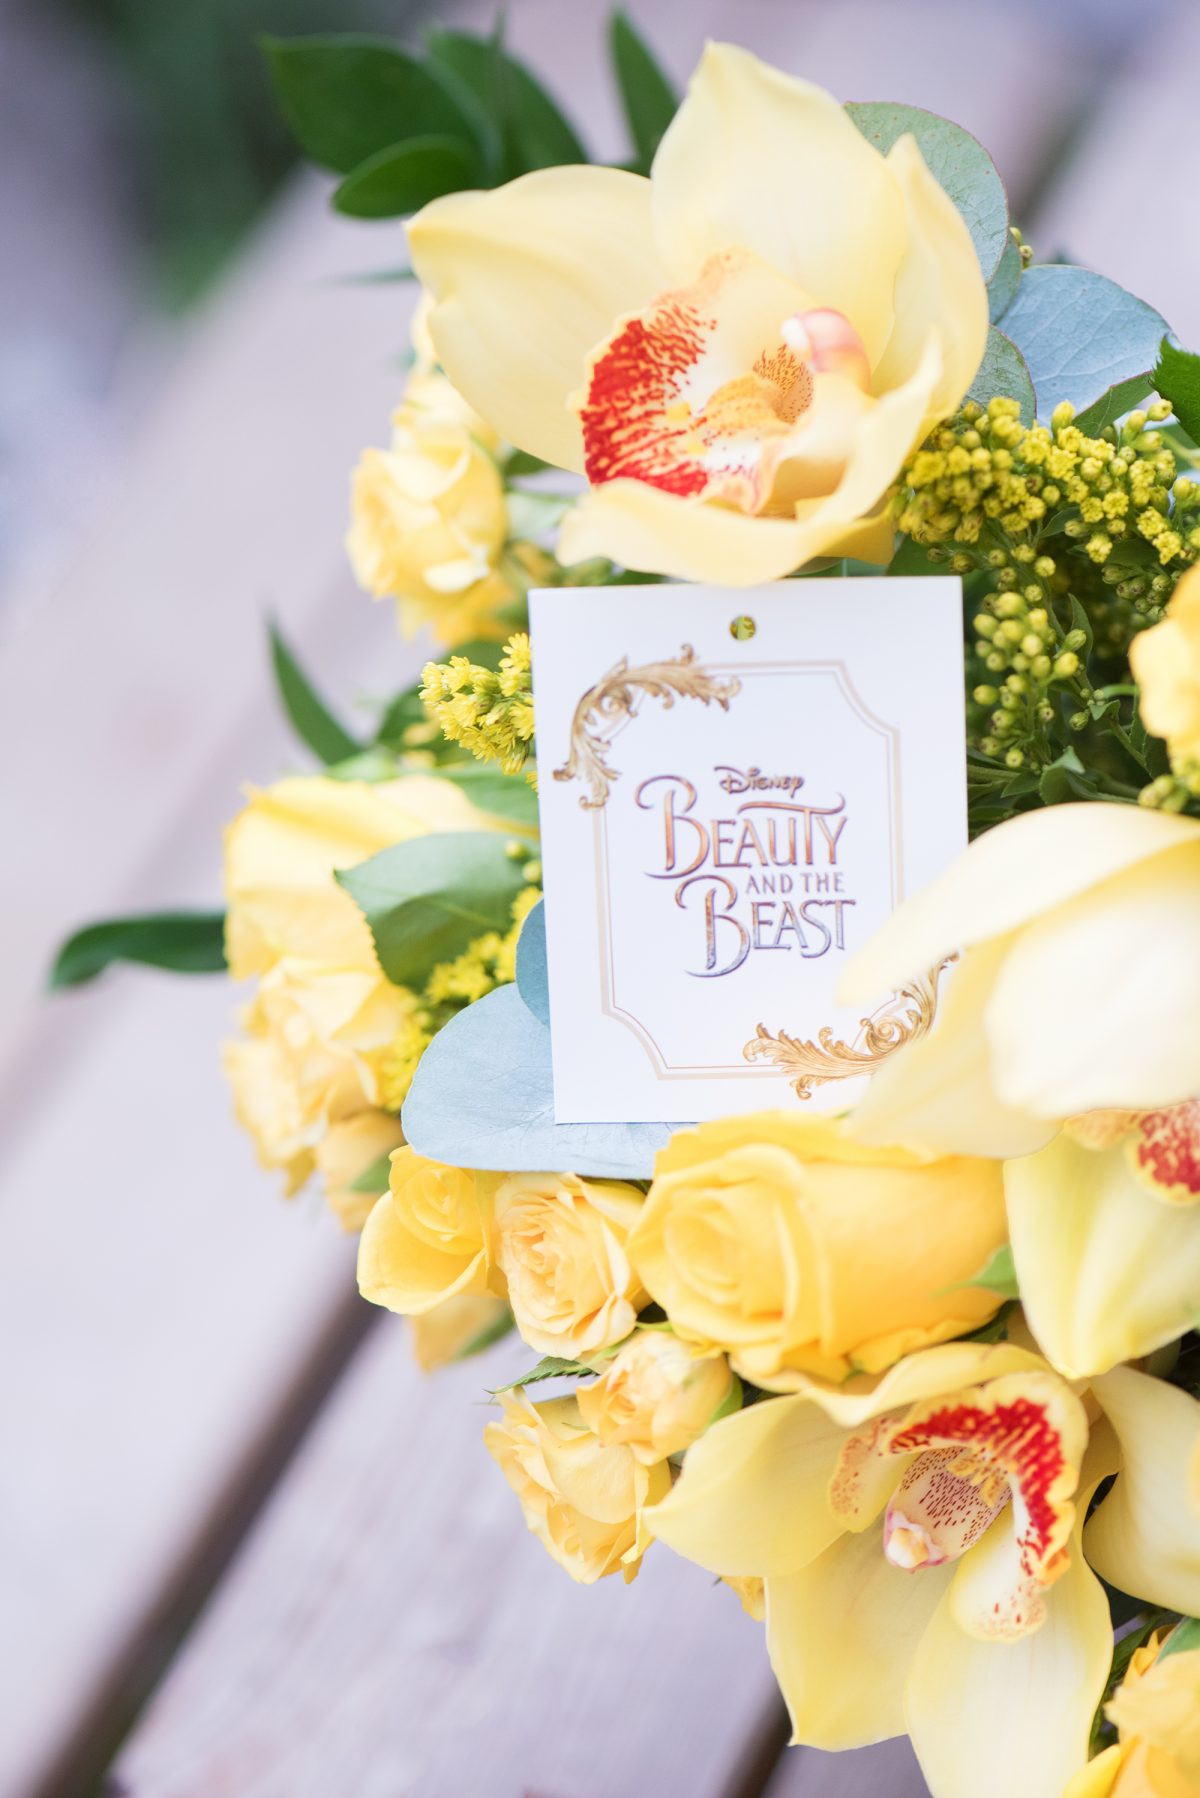 Disney flowers direct Beauty and the Beast